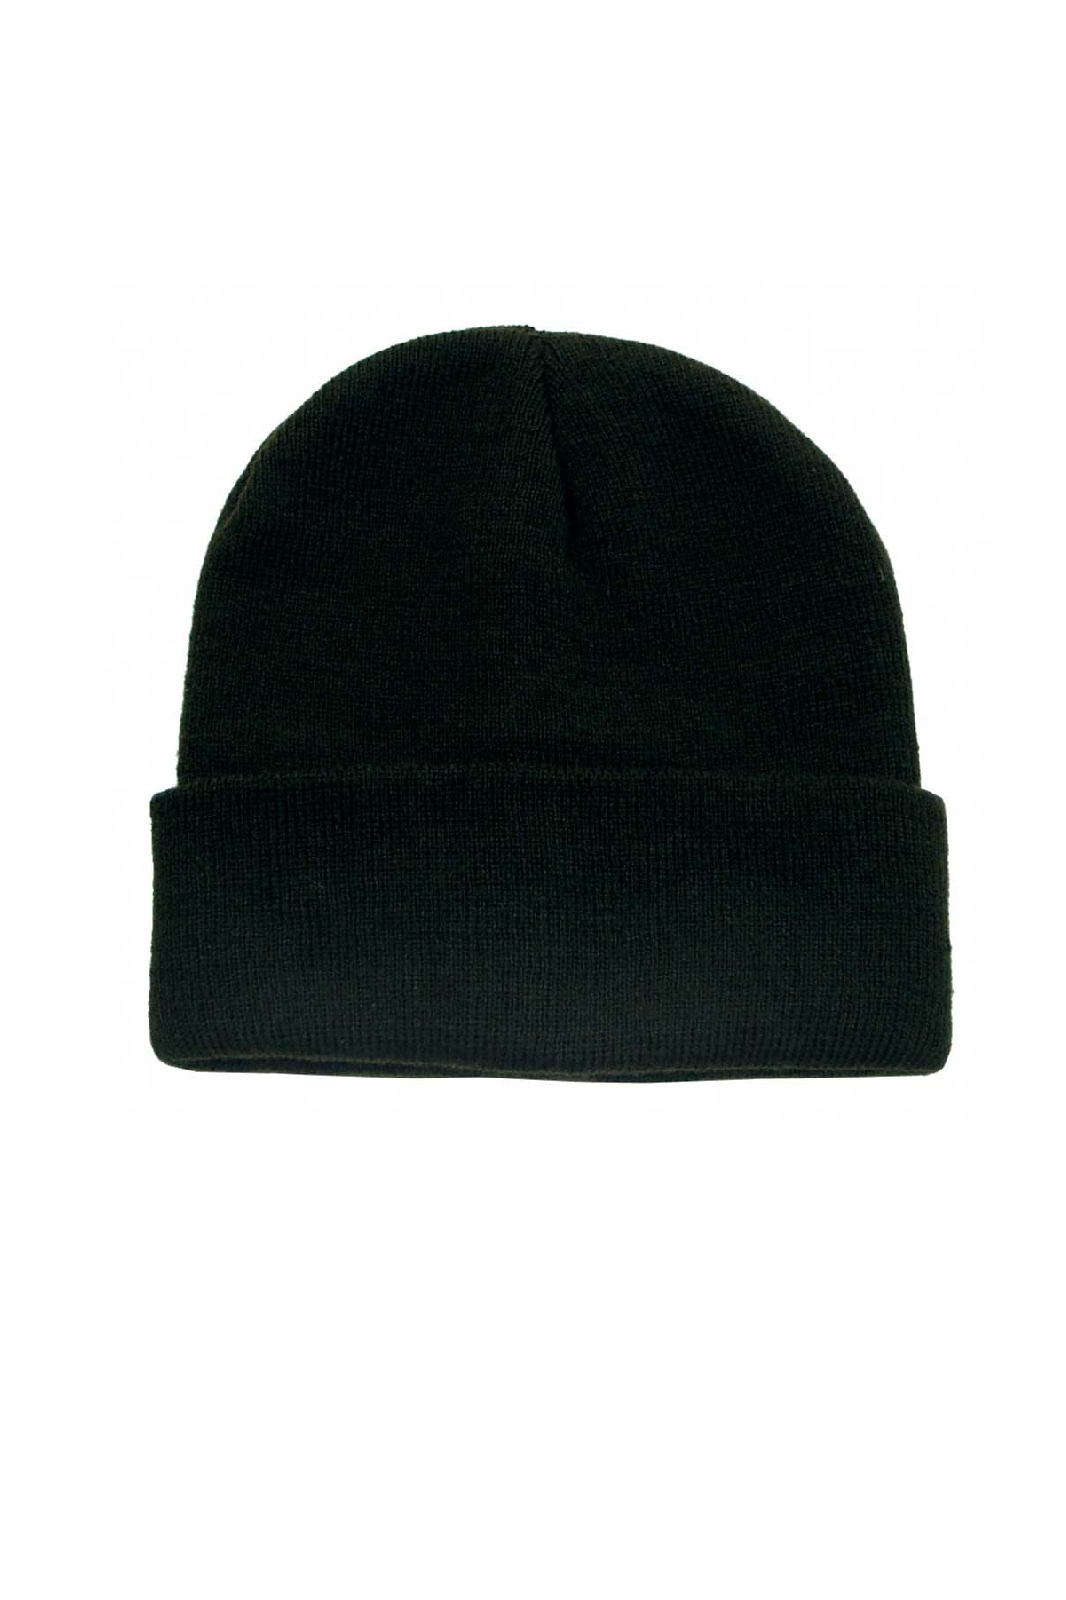 Fine Knitted Watch Cap Black